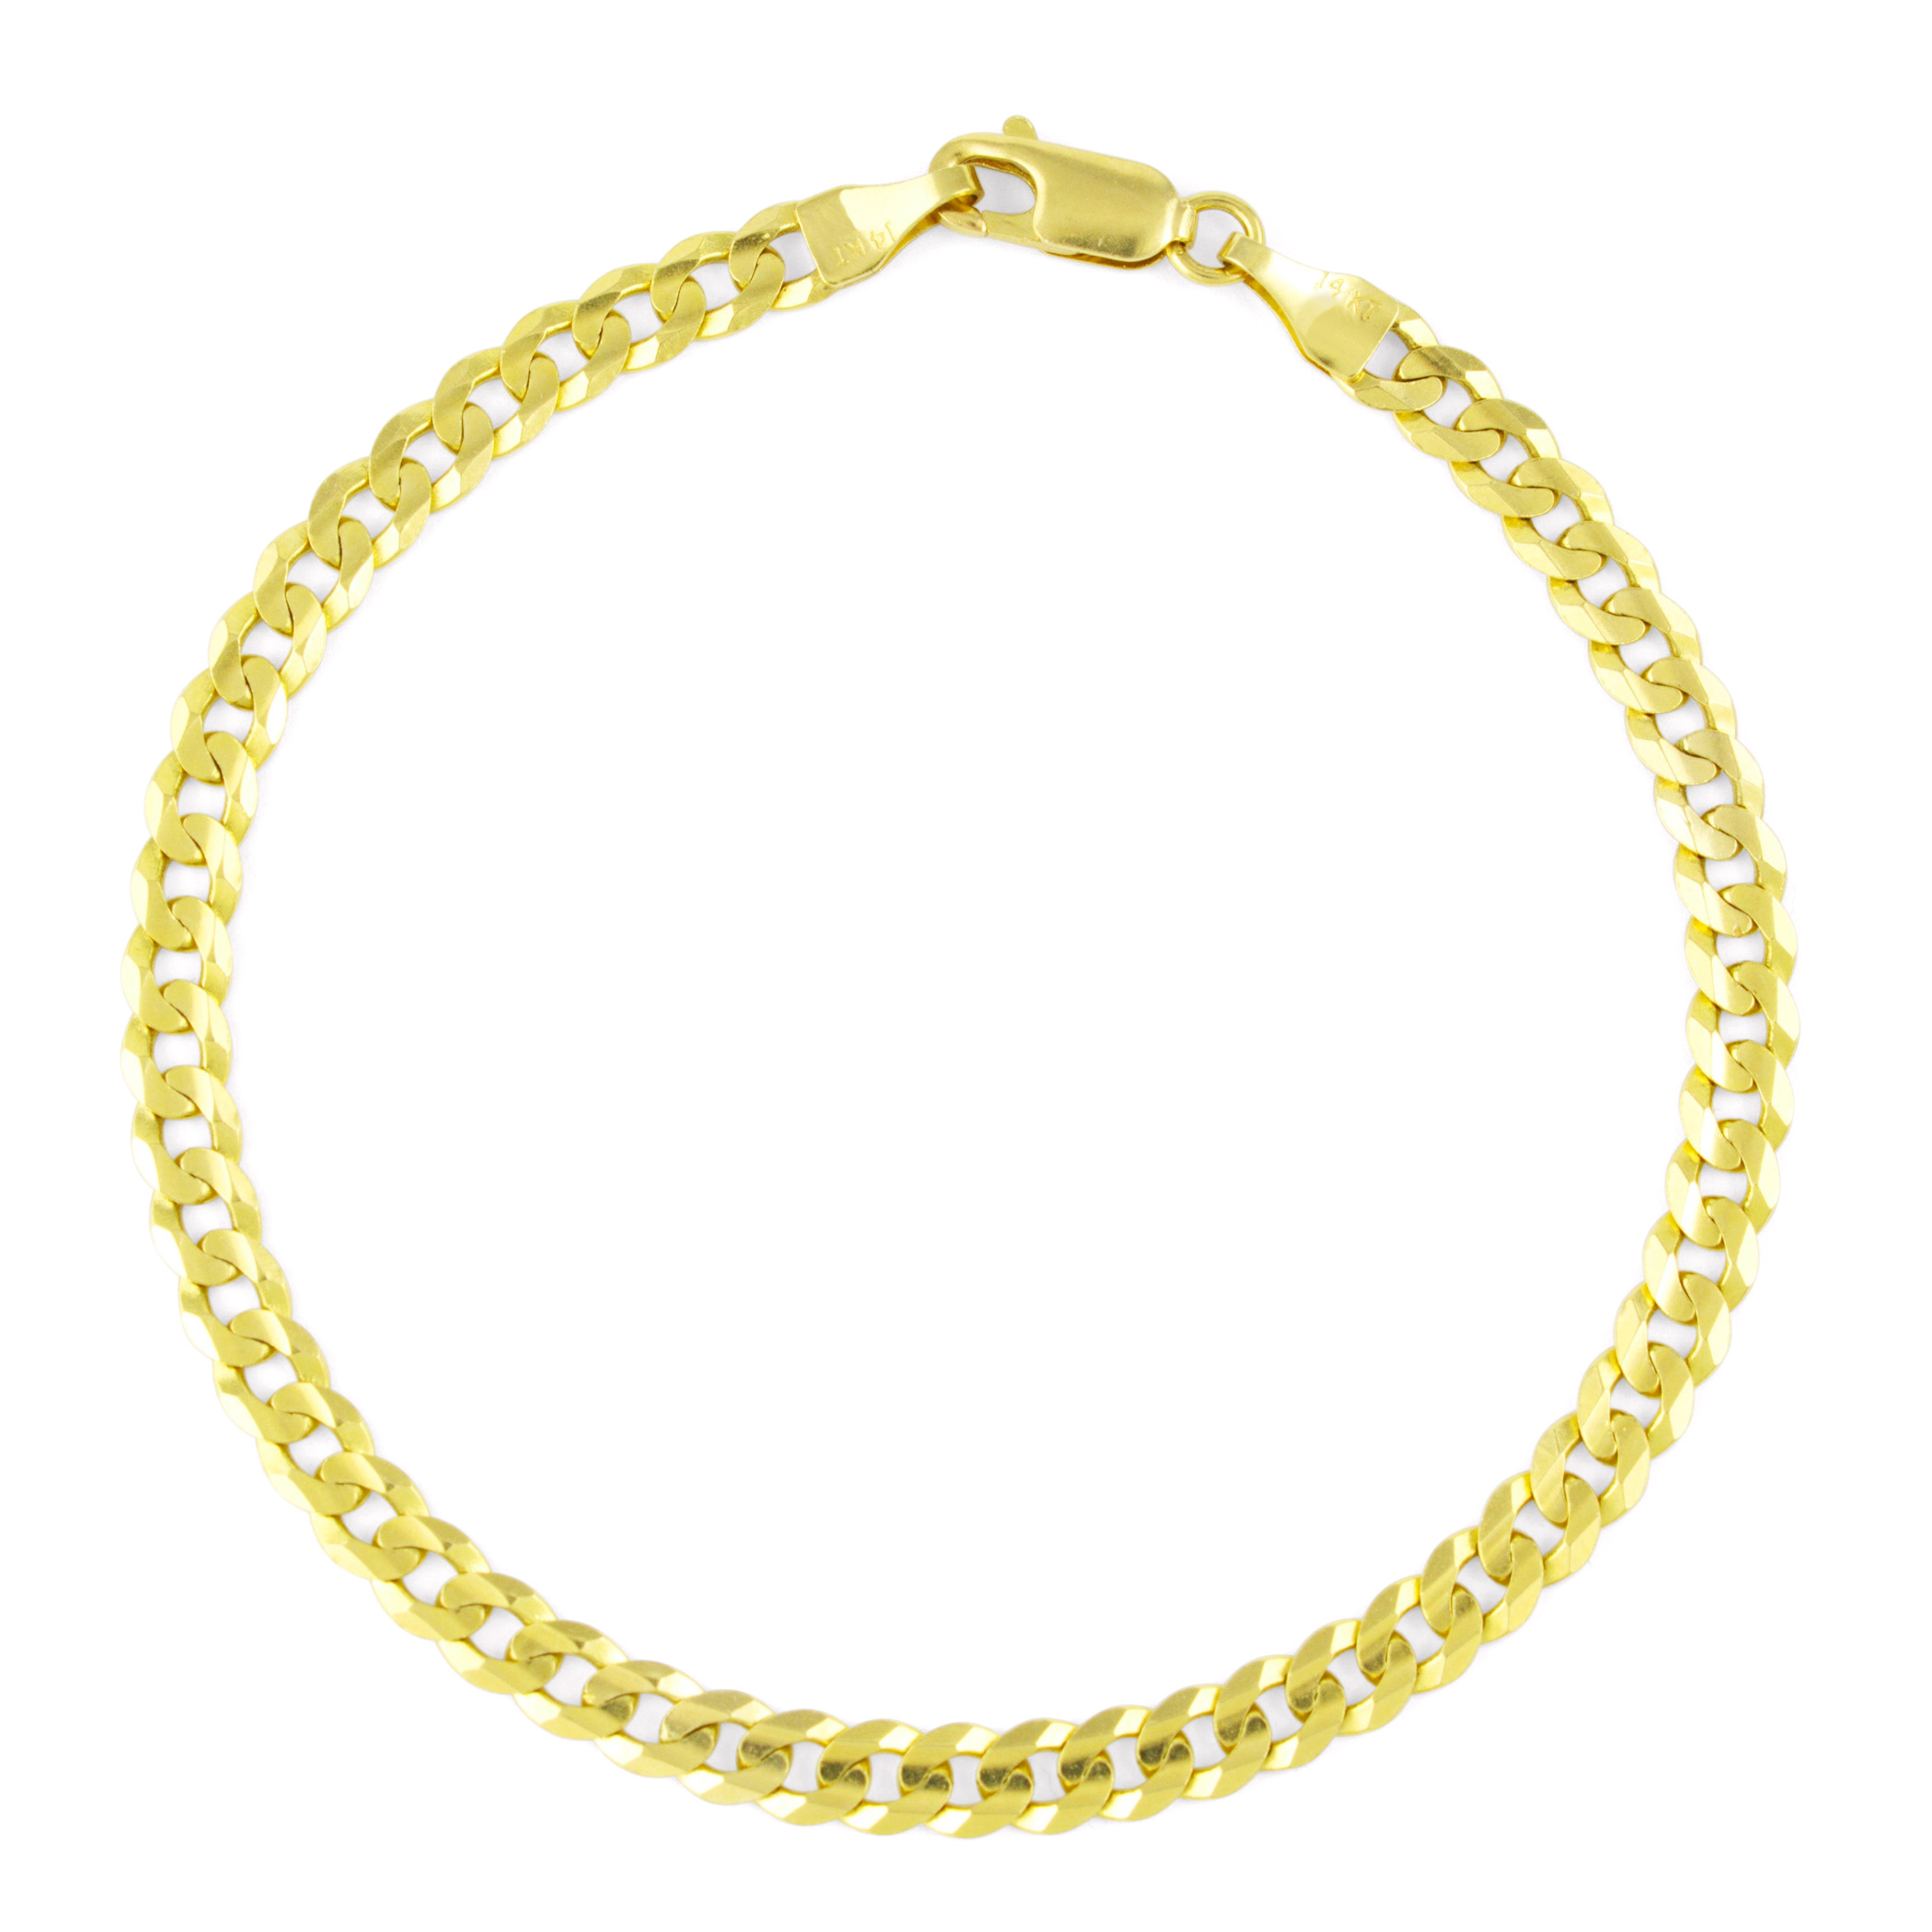 Real-14K-Yellow-Gold-4-5mm-Cuban-Curb-Chain-Link-Bracelet-Anklet-Chain-7-034-8-034-9-034 thumbnail 13